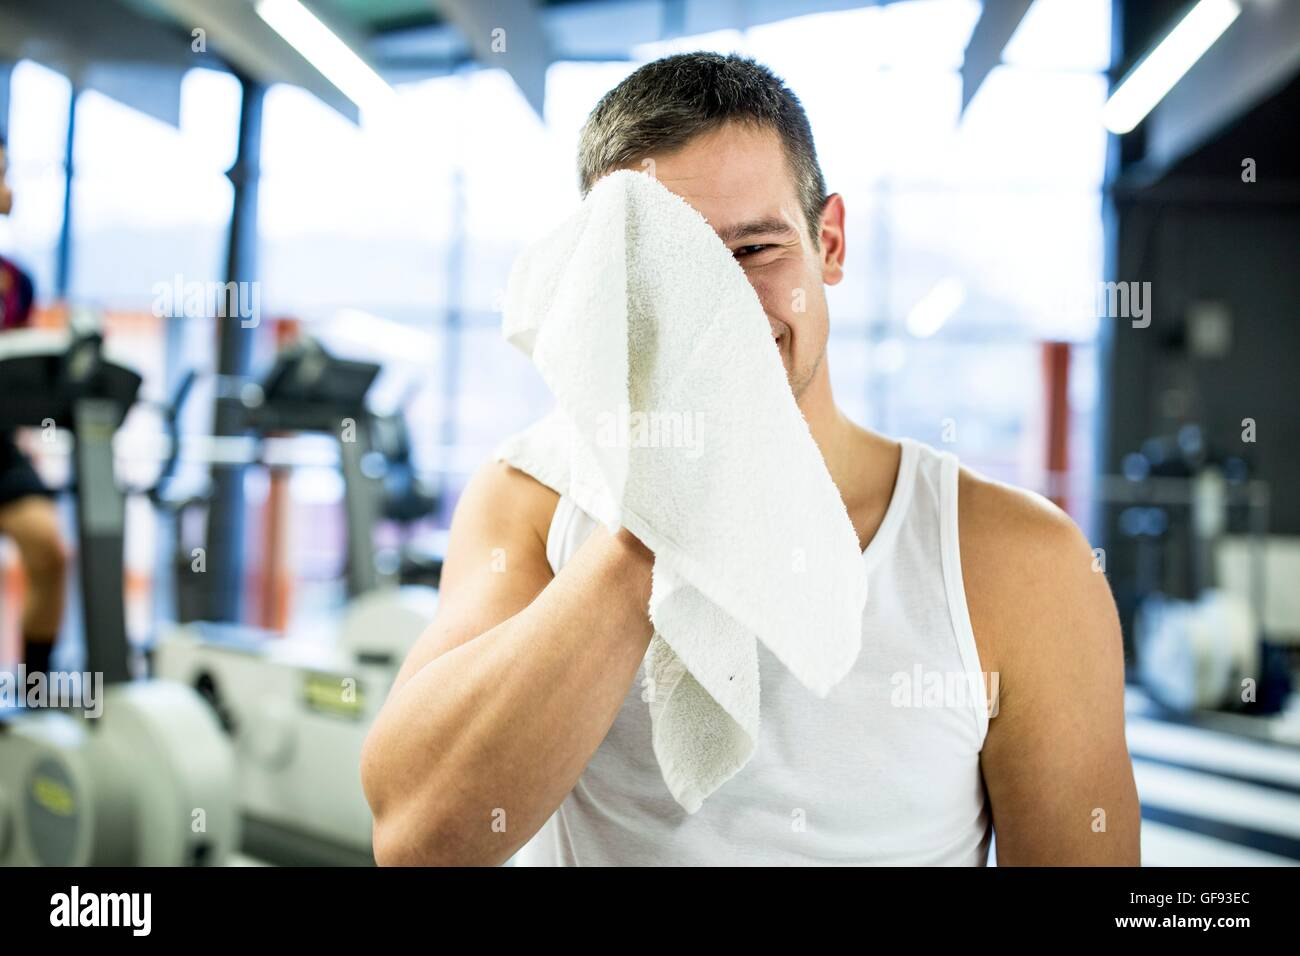 PROPERTY RELEASED. MODEL RELEASED. Portrait young man wiping his sweat with towel after exercising in gym. - Stock Image